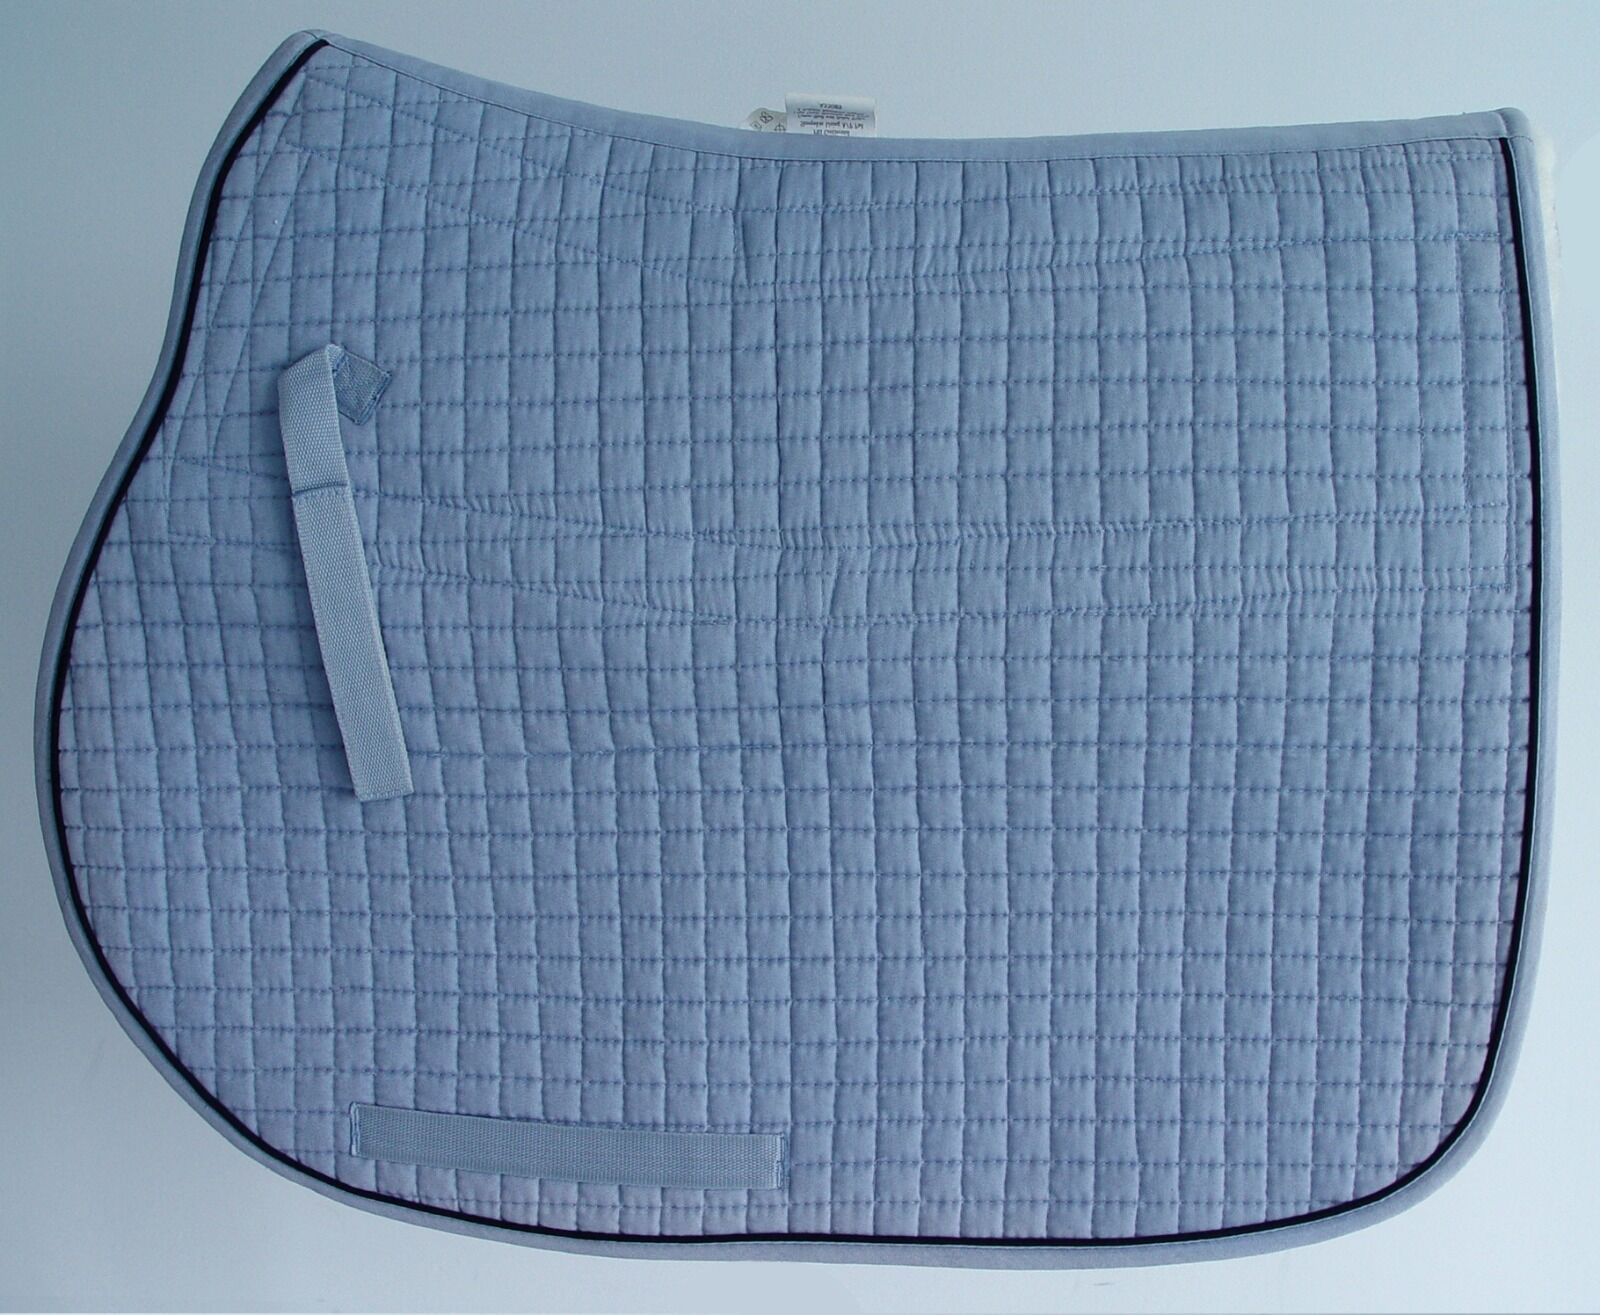 Sheepskin AP Pad, Detachable, Spine Channeled, High Wither, EquuFelt, Baby Blau